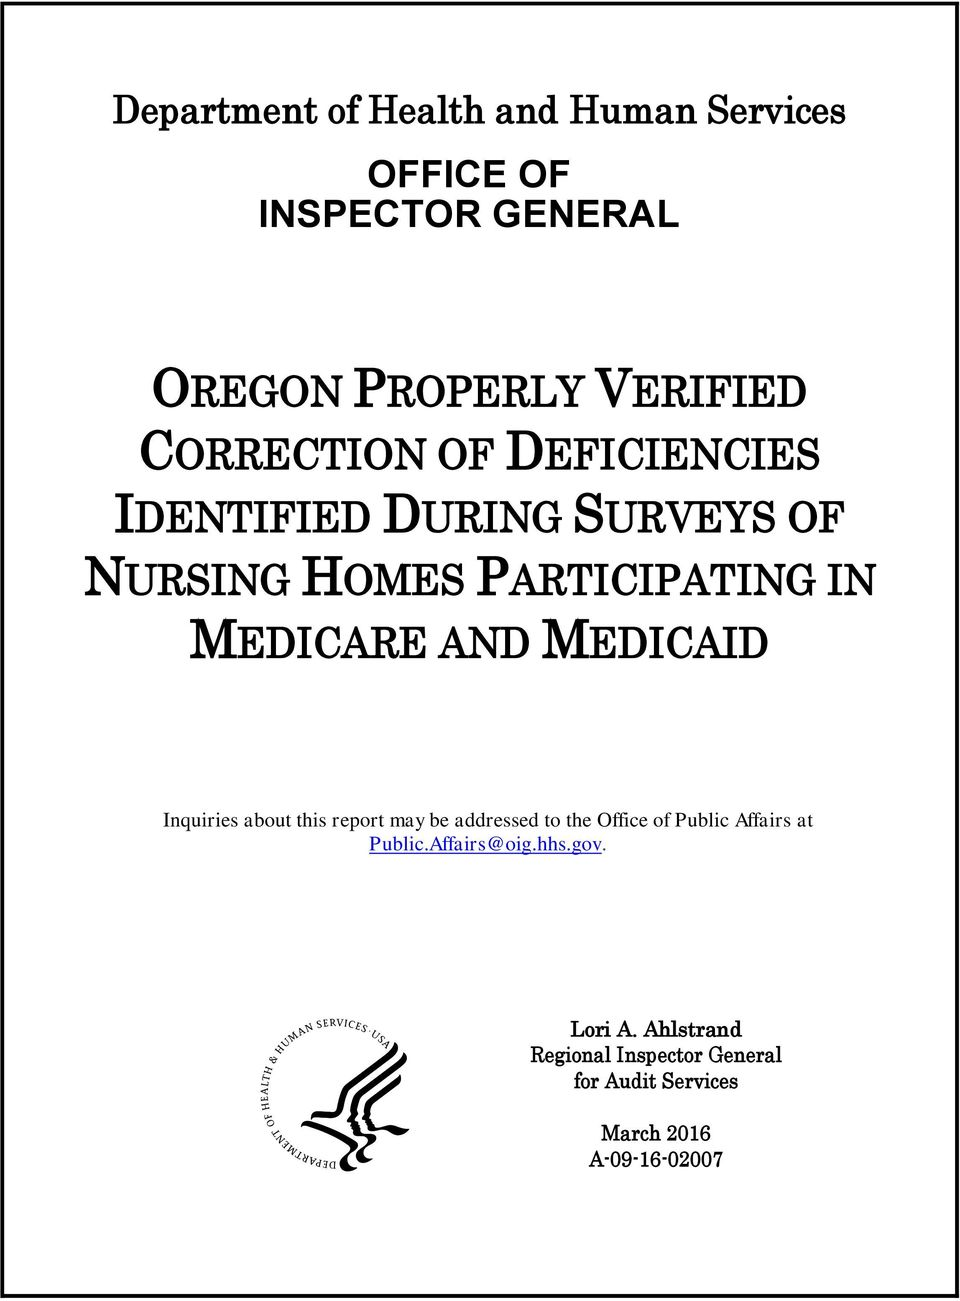 MEDICAID Inquiries about this report may be addressed to the Office of Public Affairs at Public.